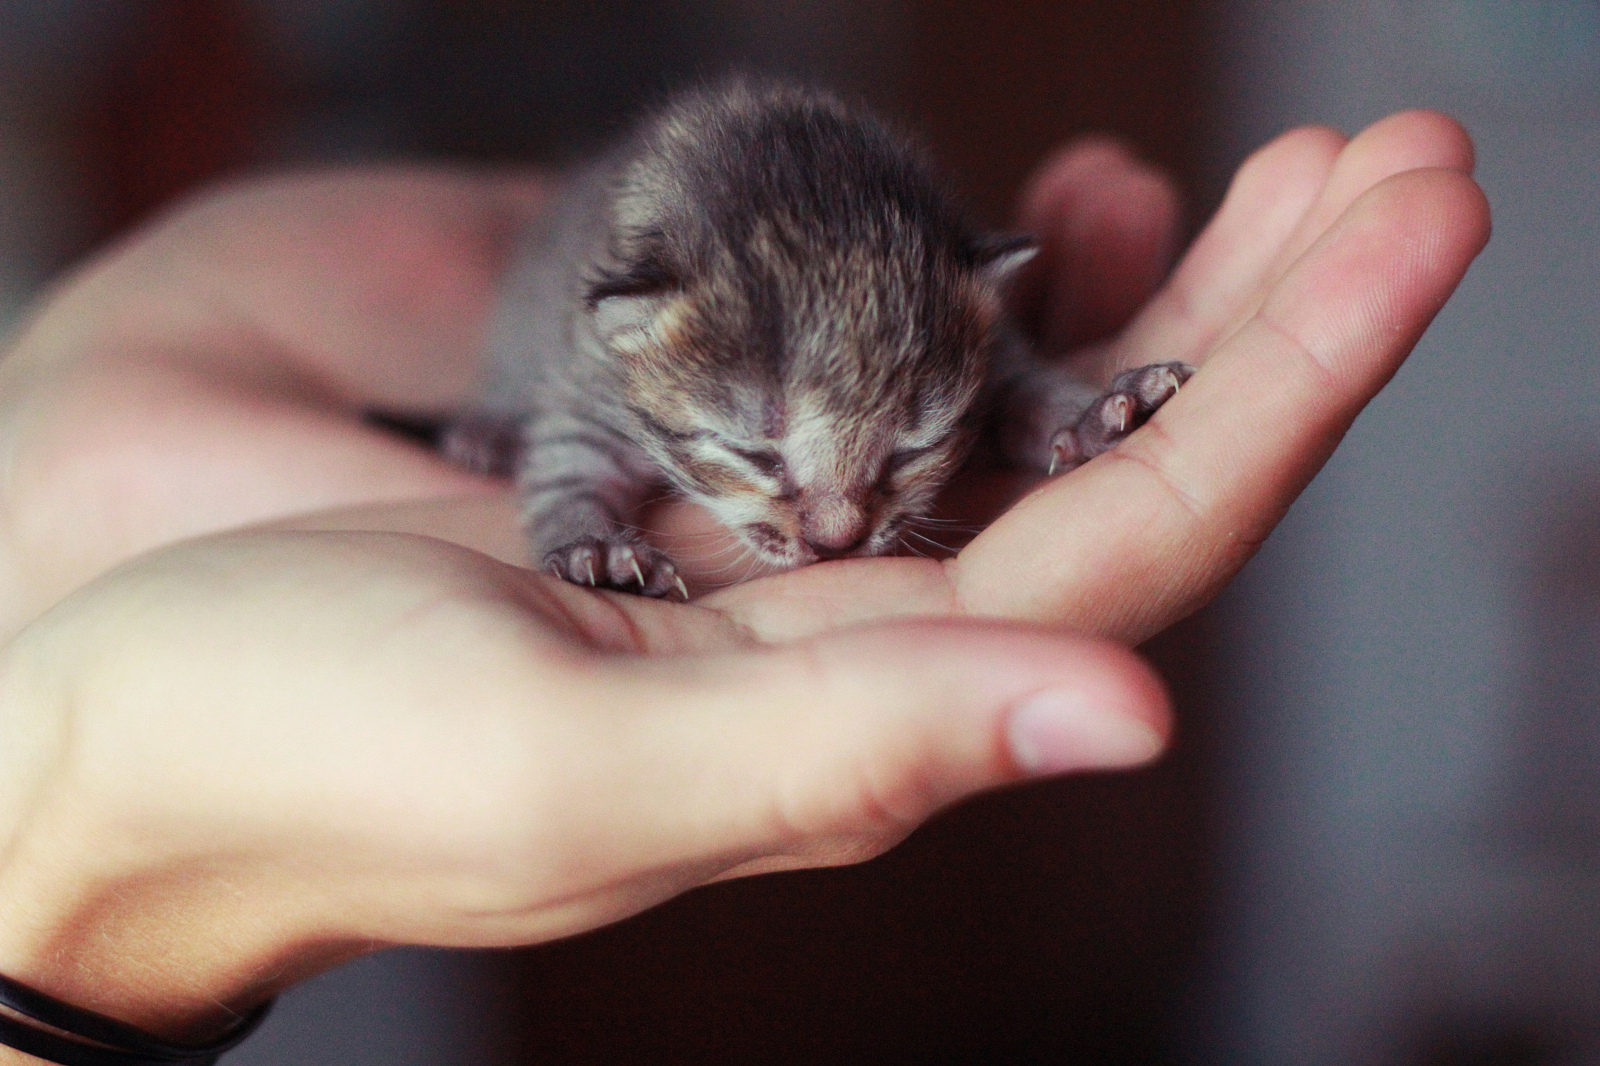 WHY A KITTEN NURSERY? - These tiny lives are literally in our hands and it's up to us to save them. Learn more about the Little Paws Project!